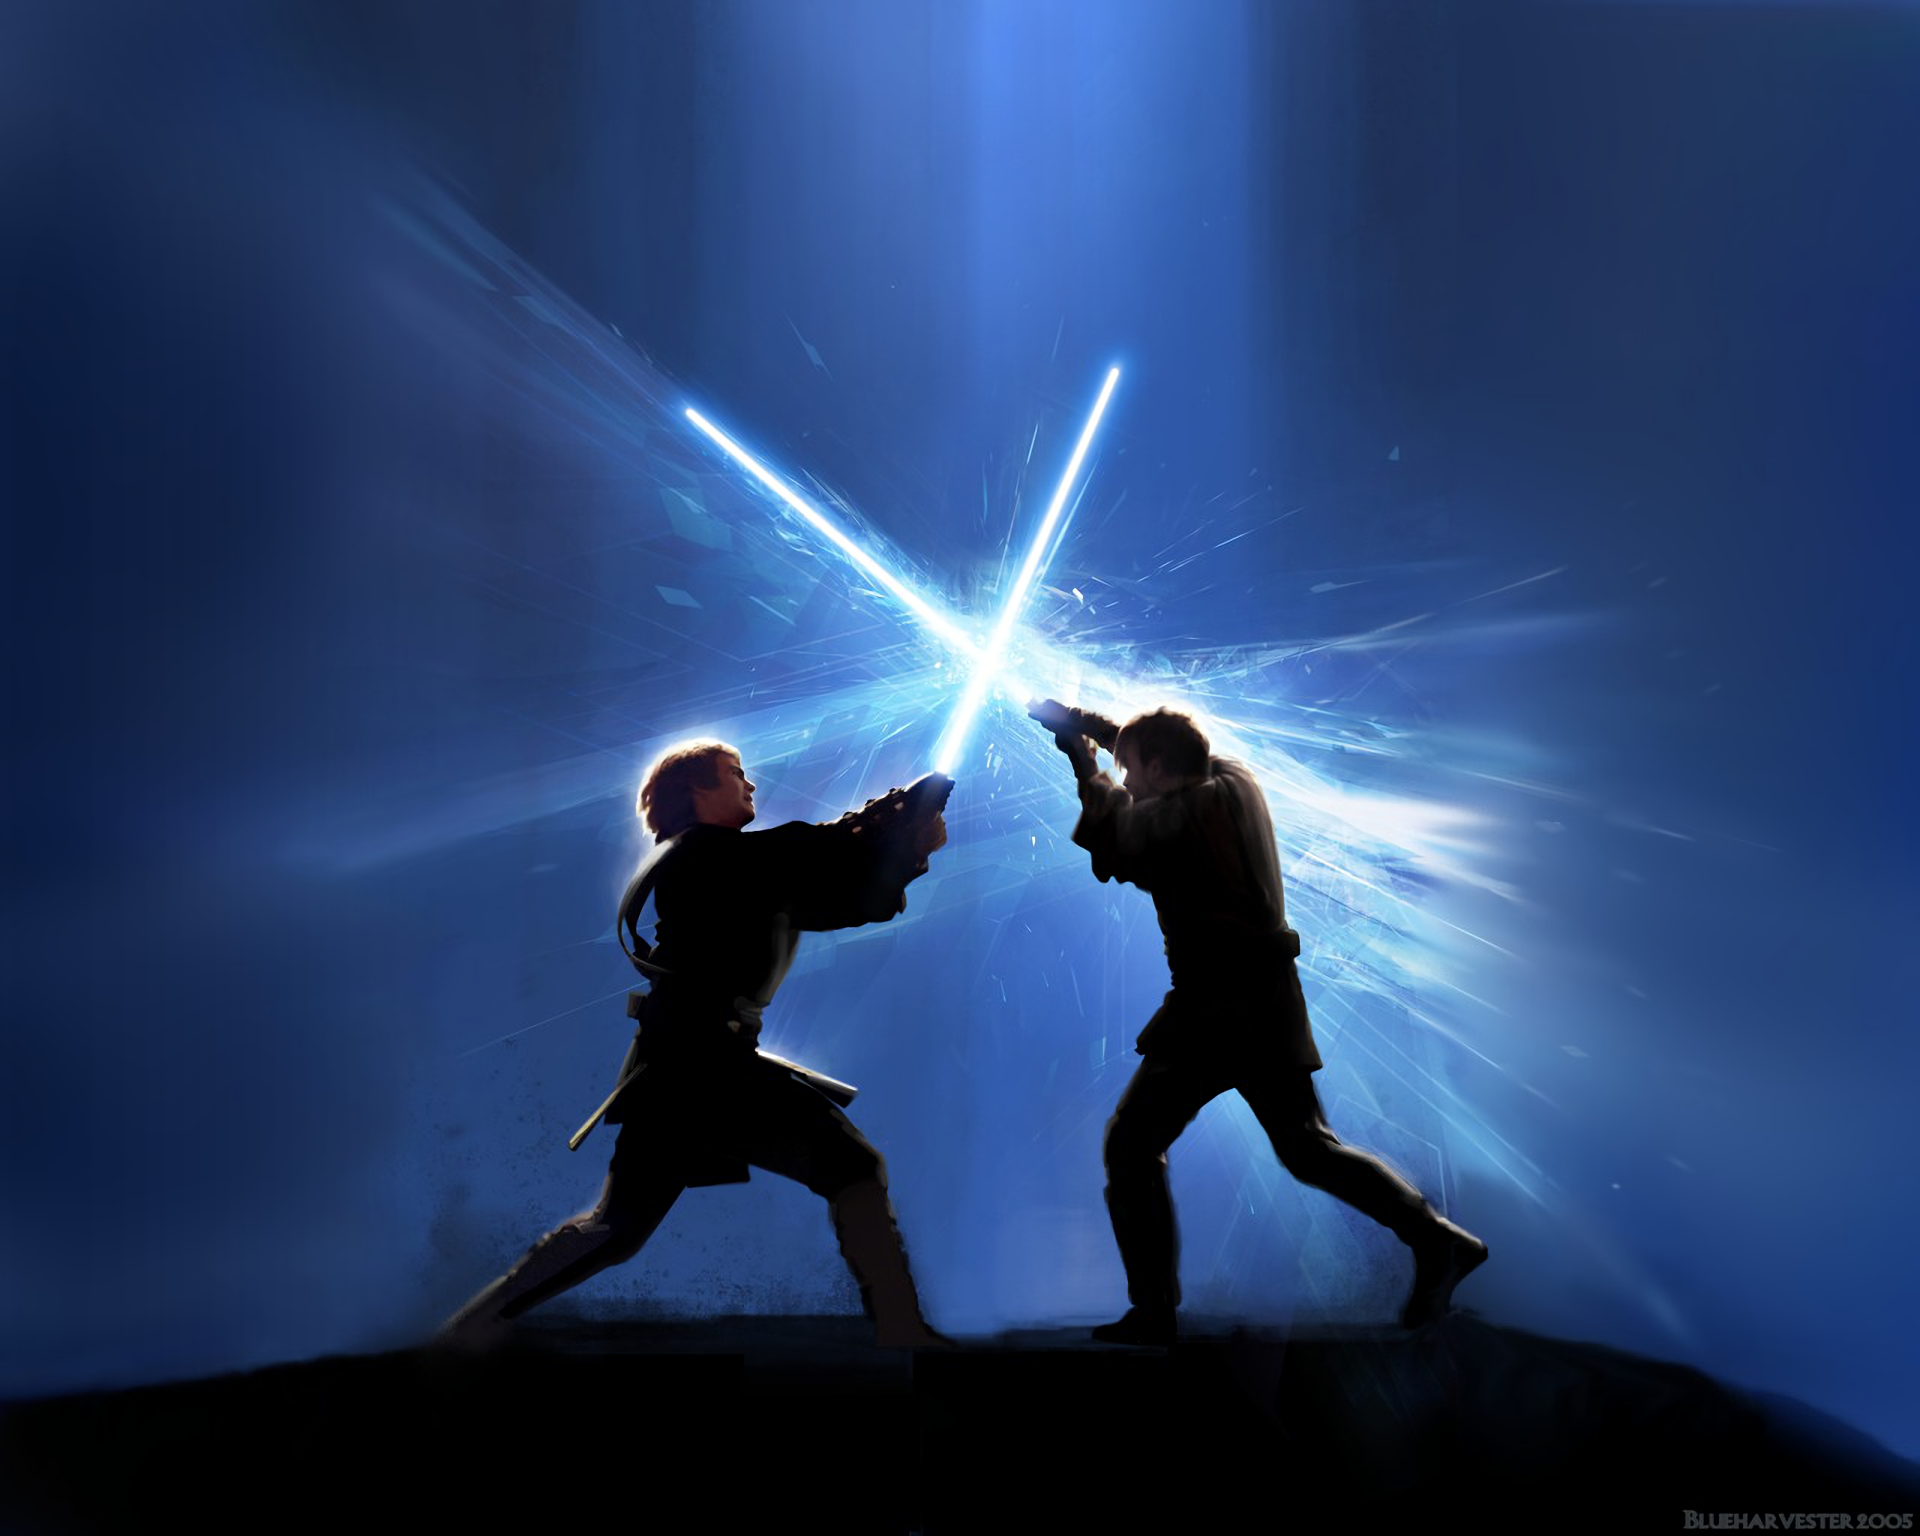 Blue Star Wars Wallpapers Top Free Blue Star Wars Backgrounds Wallpaperaccess